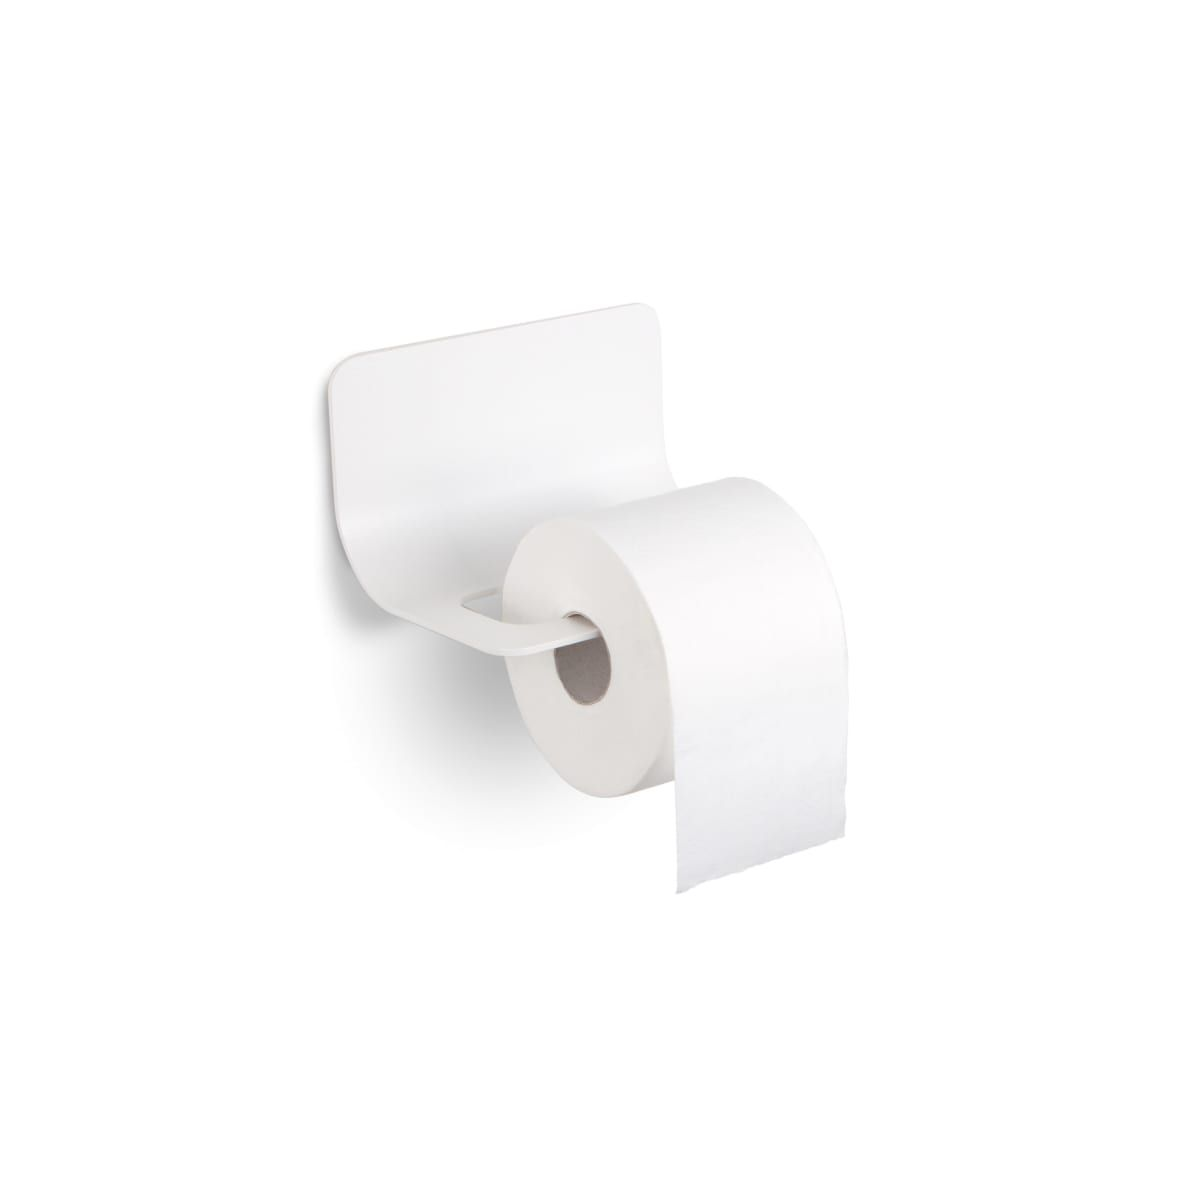 Small Space Furniture White Fabric Decorative Toilet Paper Etsy Toilet Paper Toilet Paper Holder Toilet Paper Roll Holder